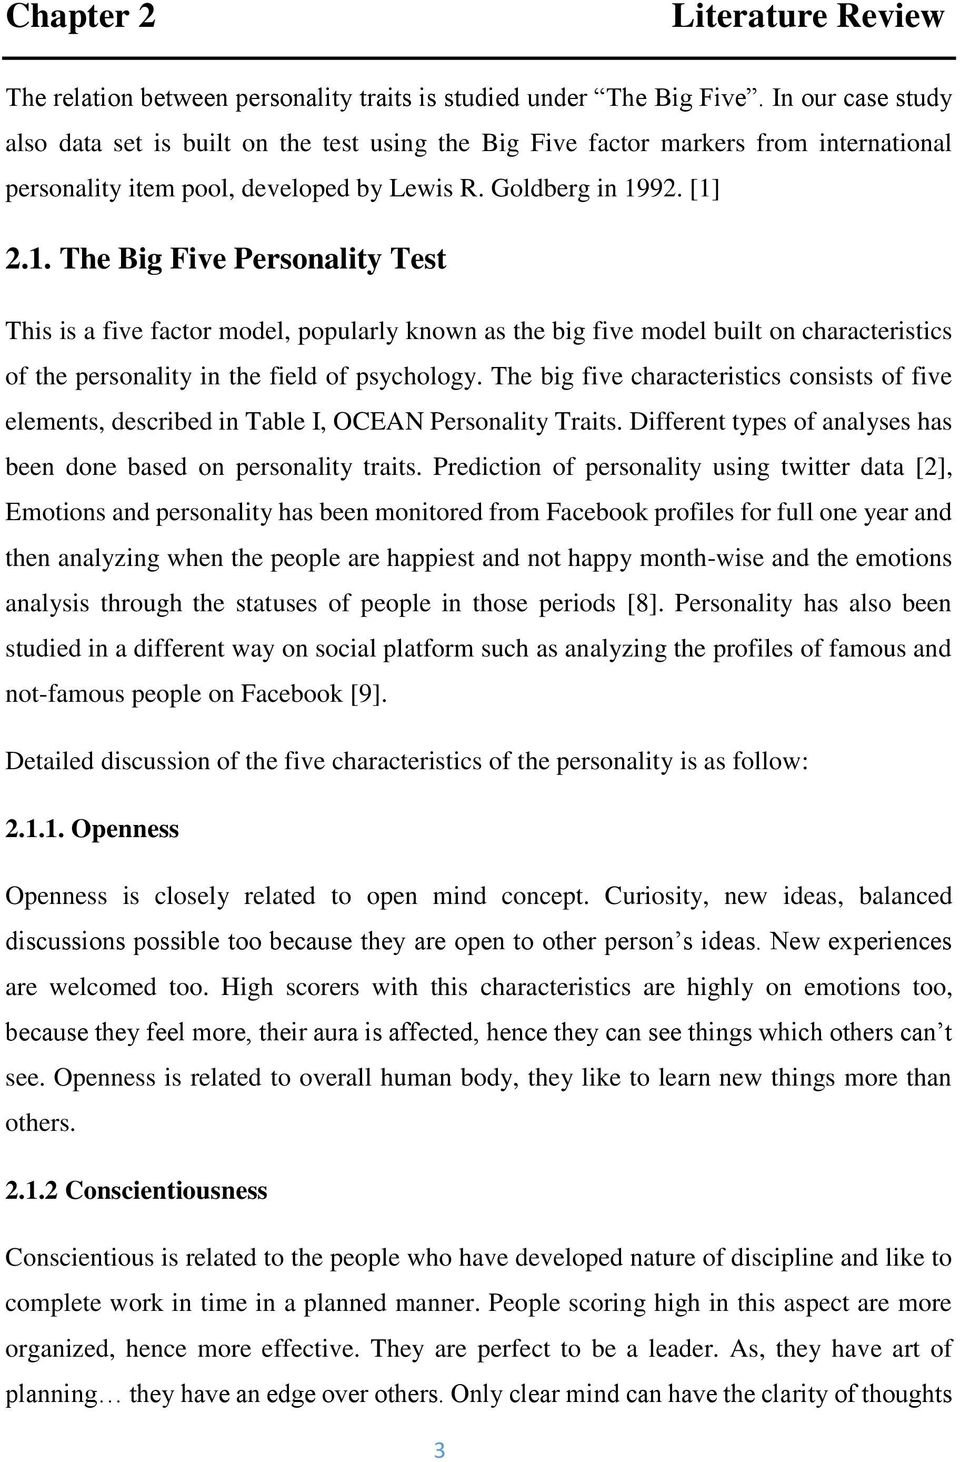 Predicting Employability from User Personality using